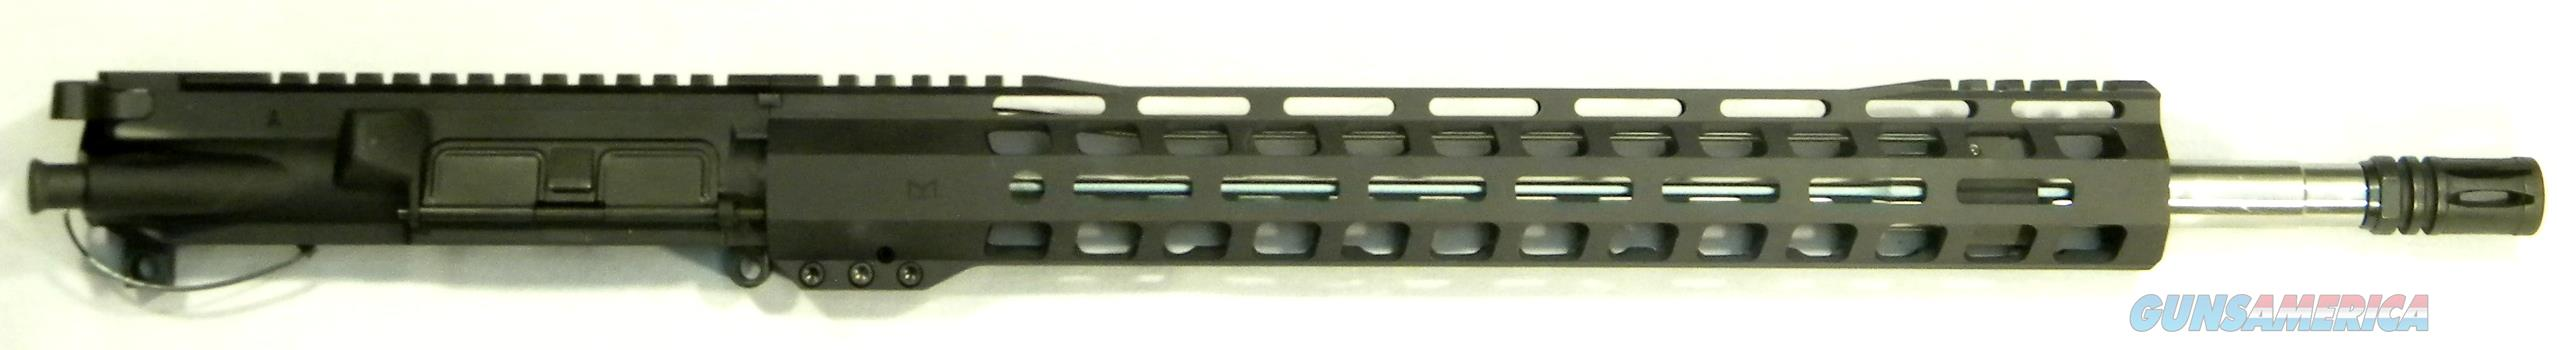 ".224 Valkyrie Complete Upper For AR-15, 18"" w/ Free-Float Hand Guard  Non-Guns > Gun Parts > M16-AR15"